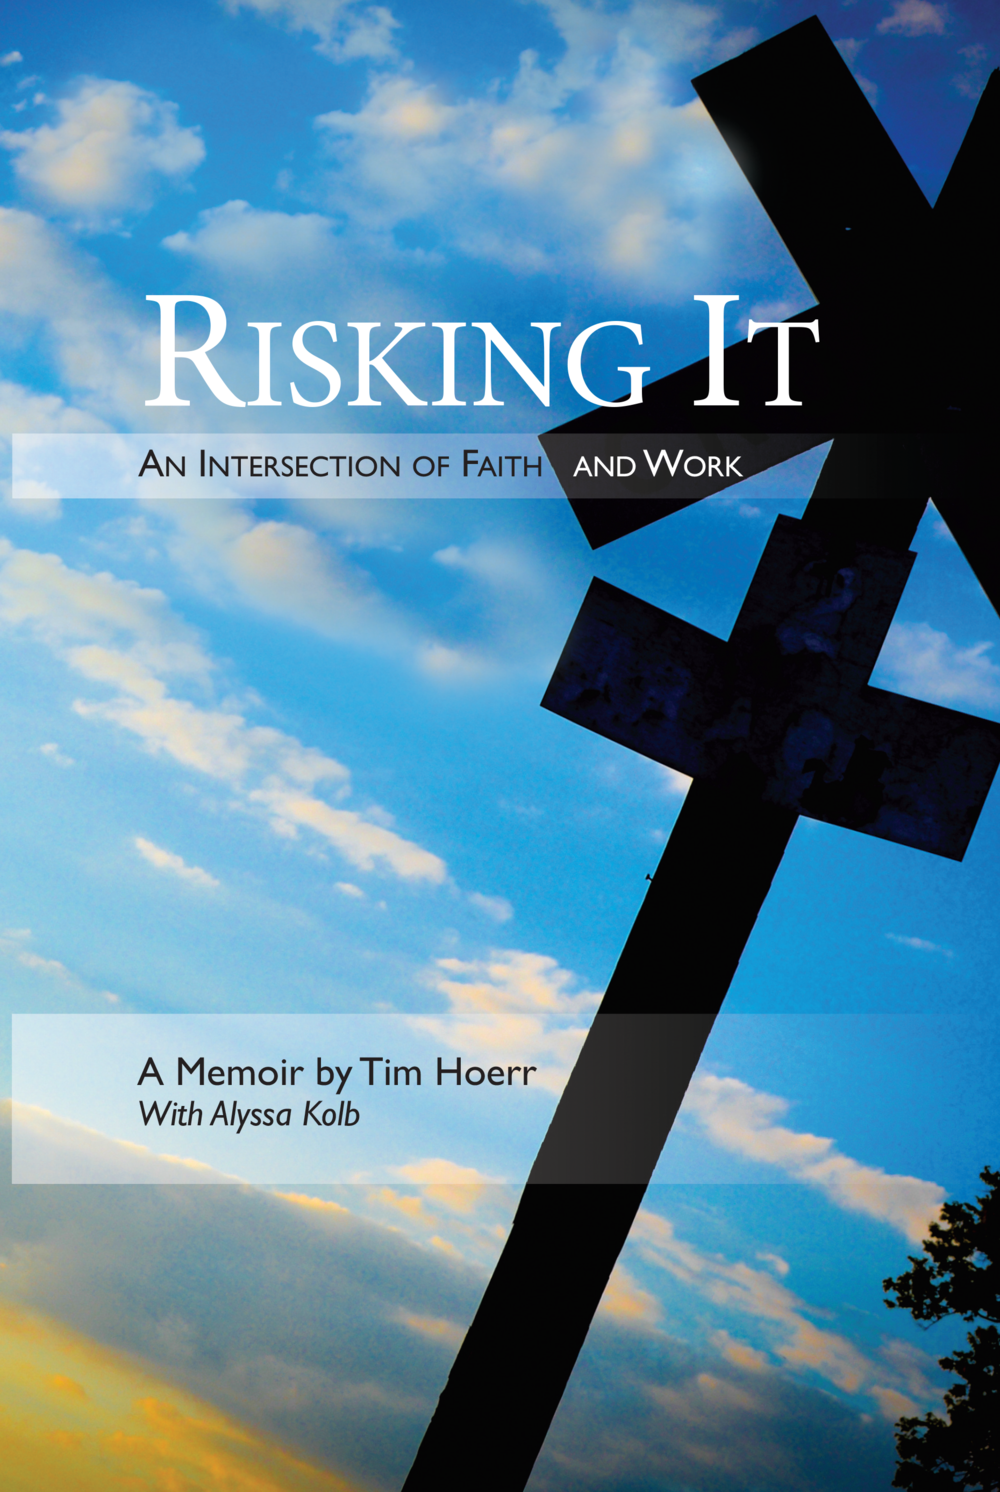 tim-hoerr-risking-it-cover